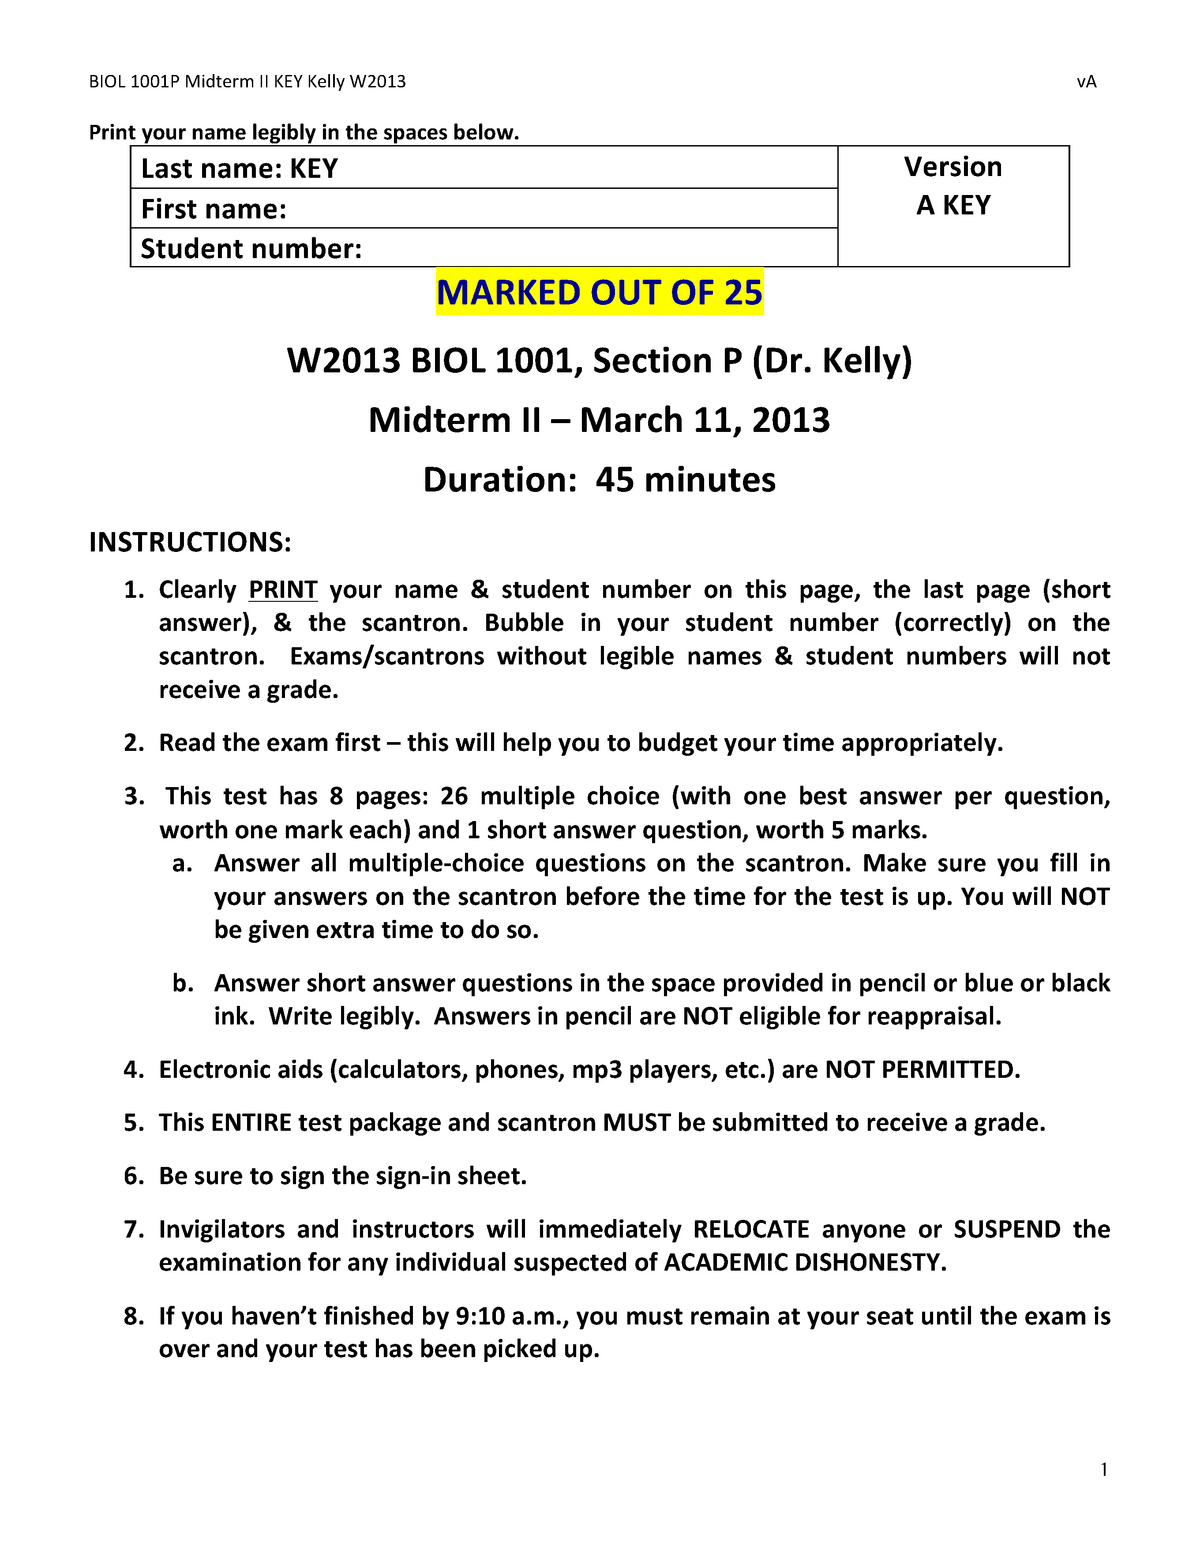 Exam 11 March 2013, questions and answers - Sc/Biol 1001